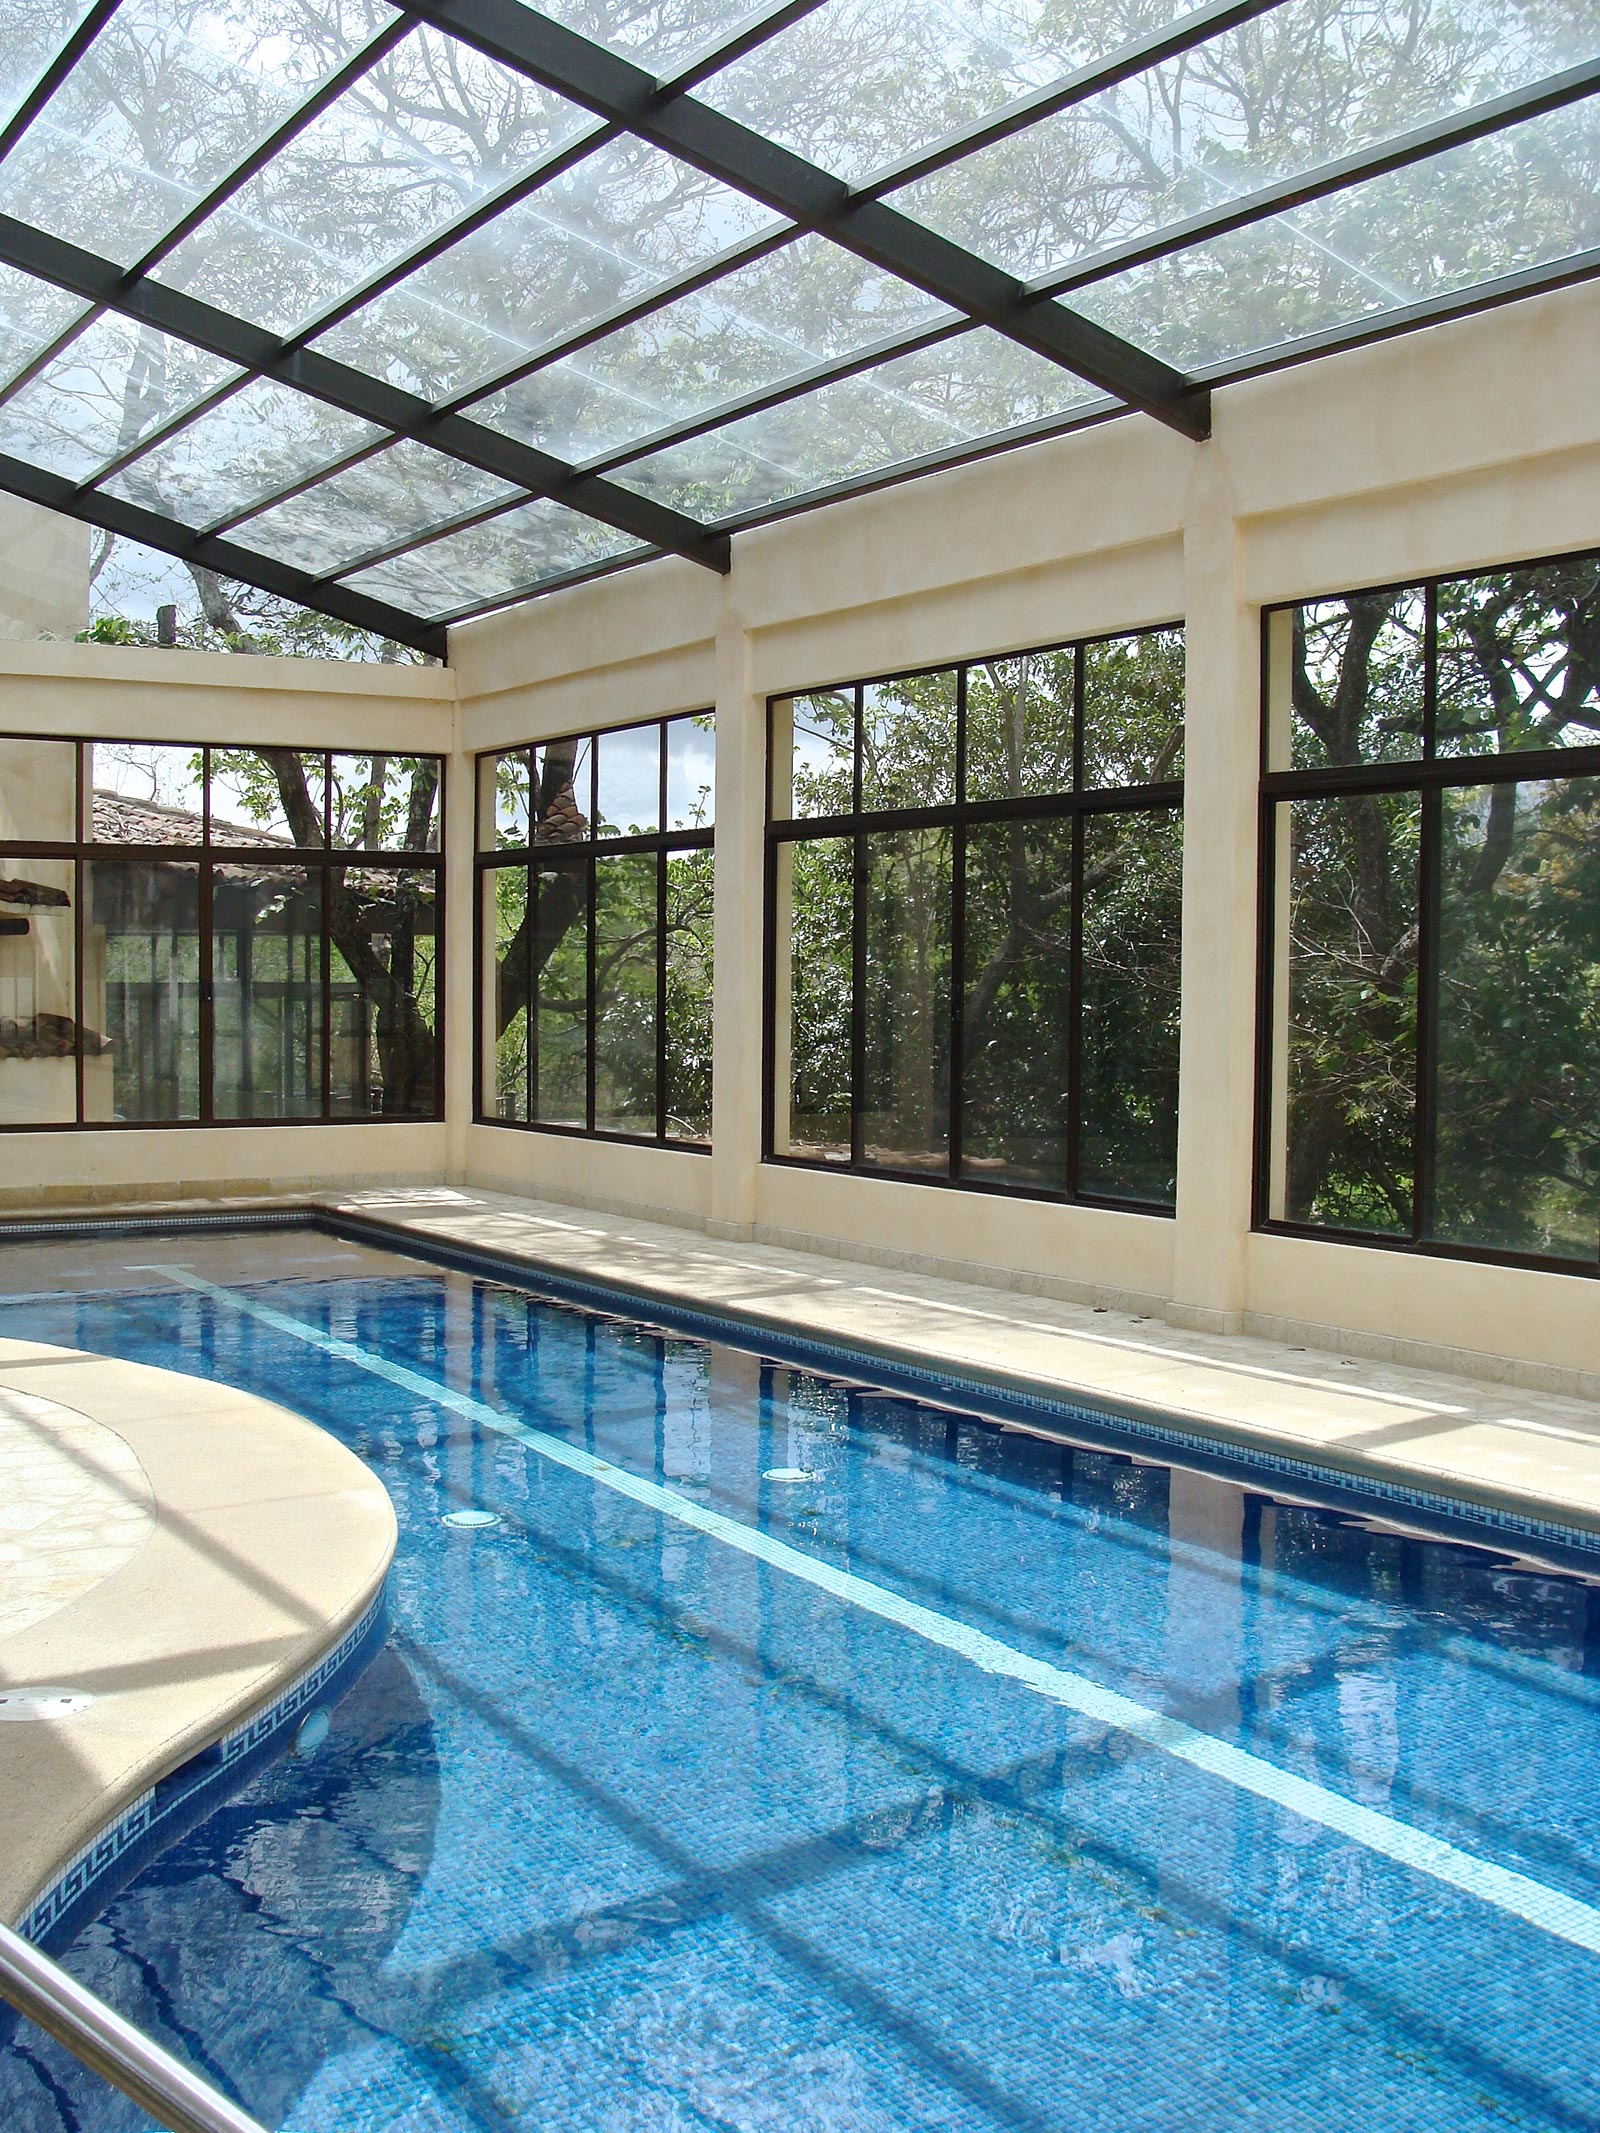 River Canyon Estate with Tropical Gardens and Indoor Pool in Santa Ana